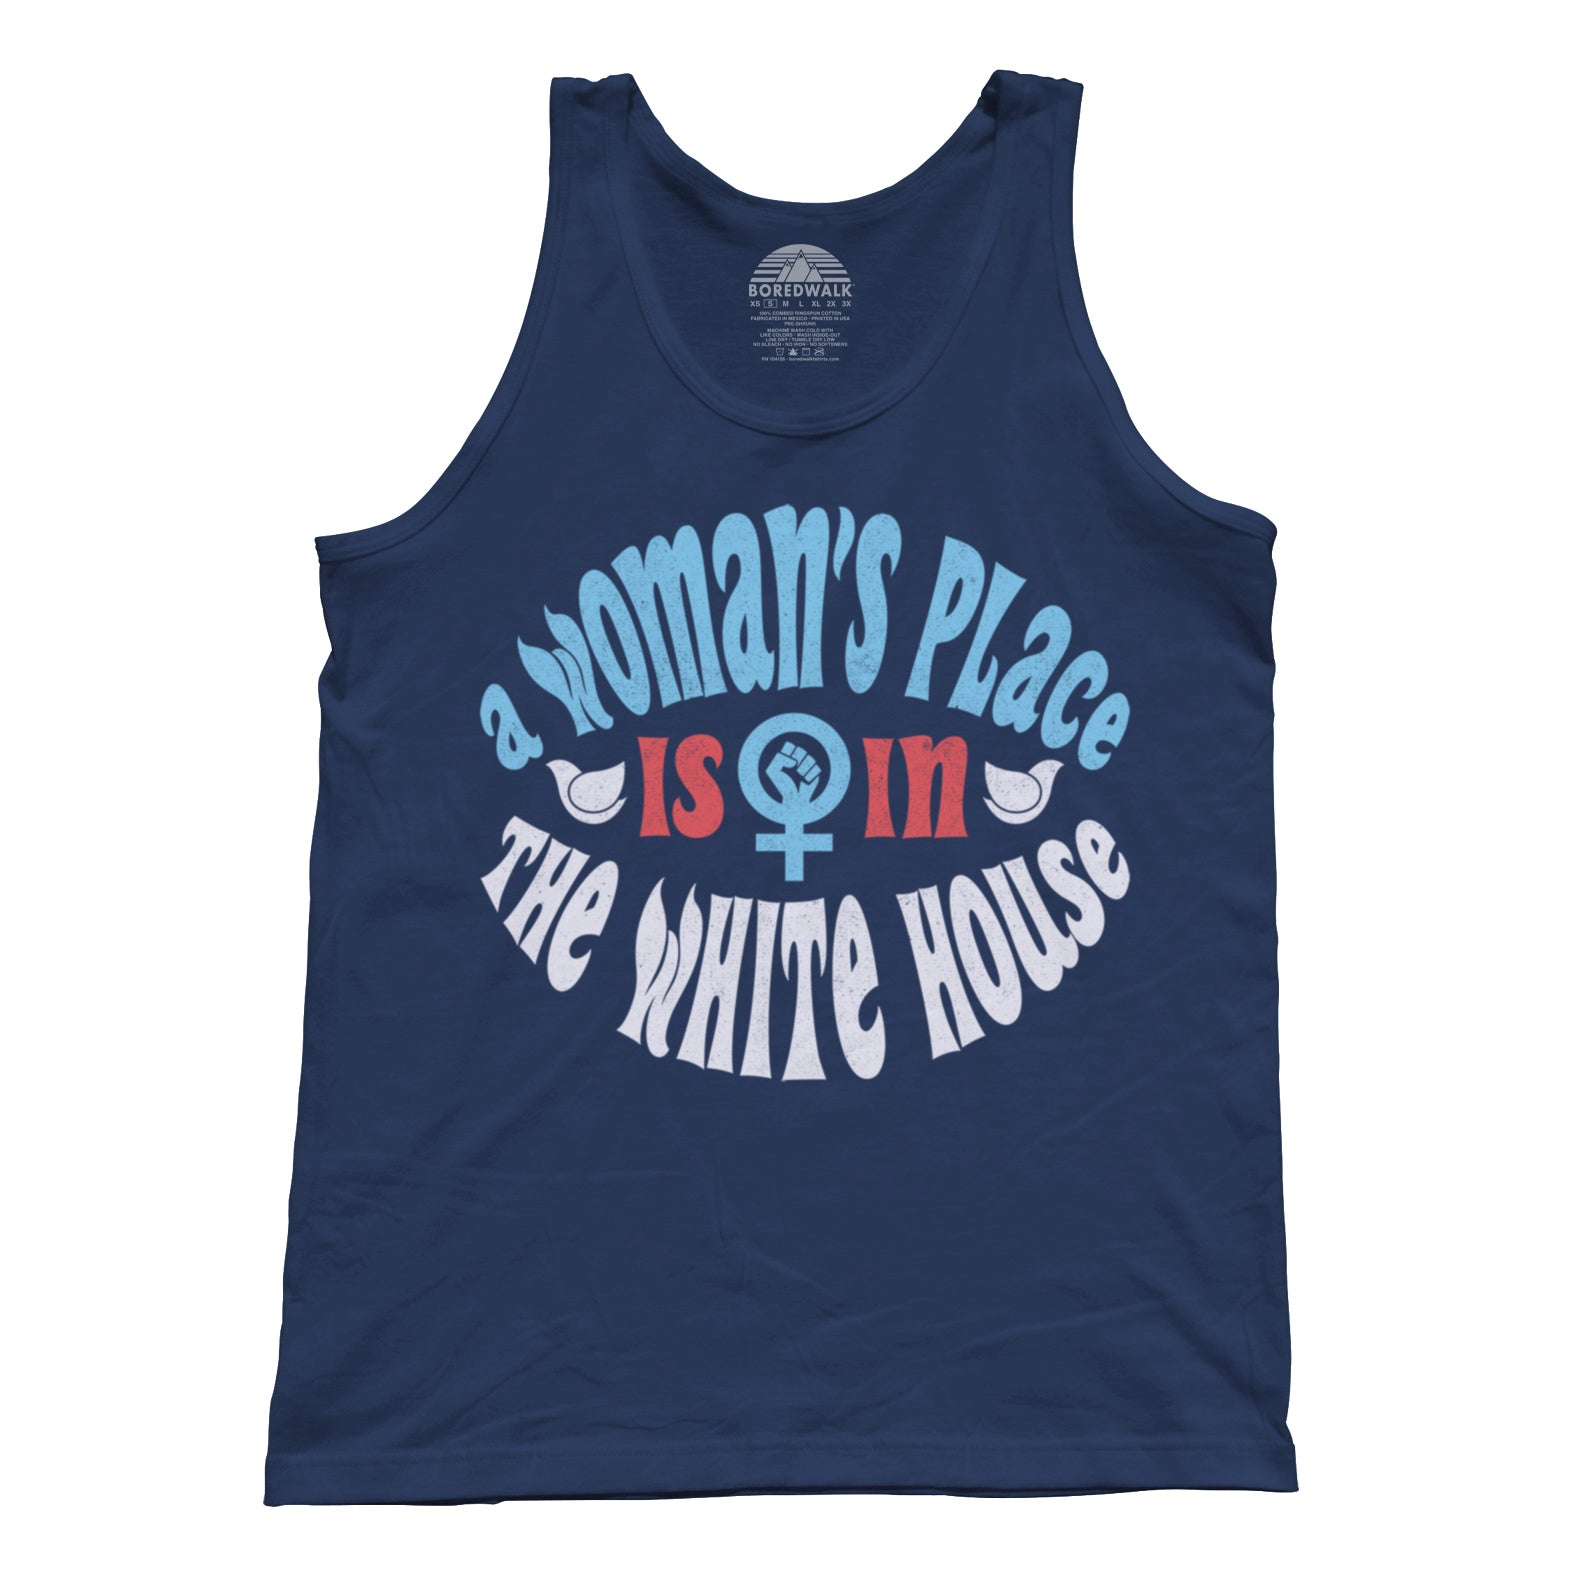 Unisex A Woman's Place is in The White House Tank Top